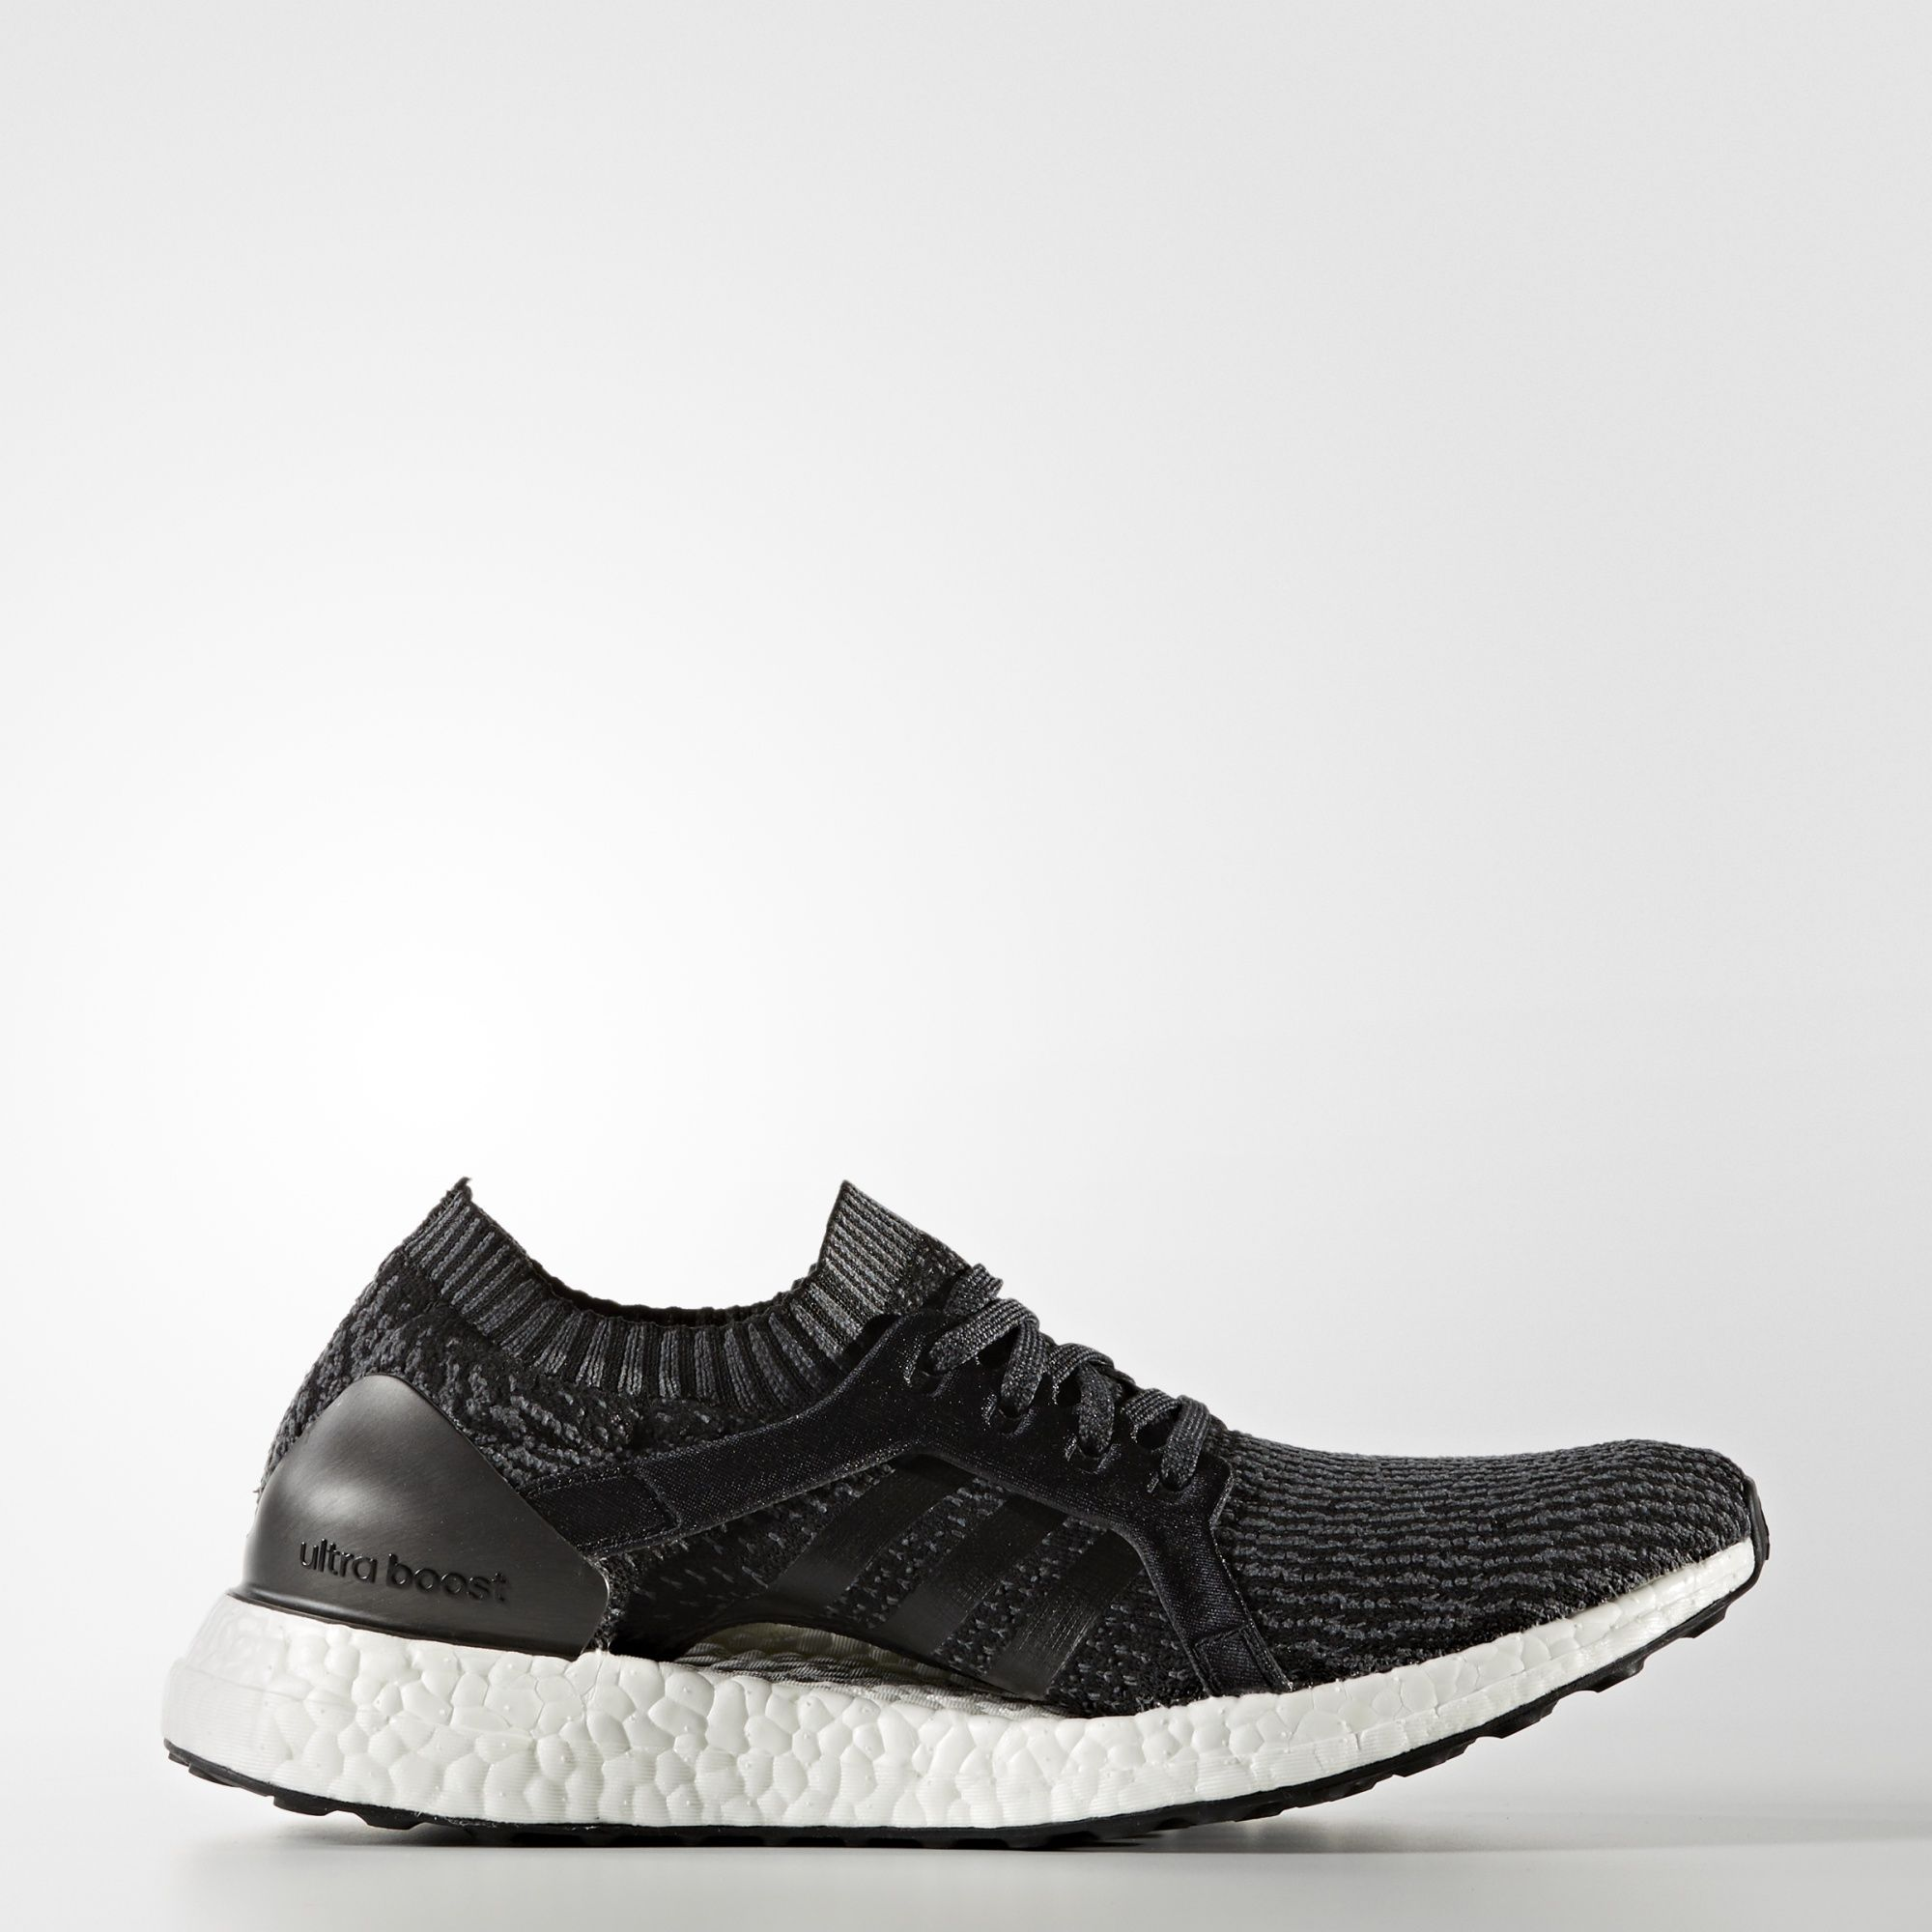 9f135127fc9f Adidas UltraBOOST X shoes in the color Core Black   Solid Grey   Onix  (BB1696)